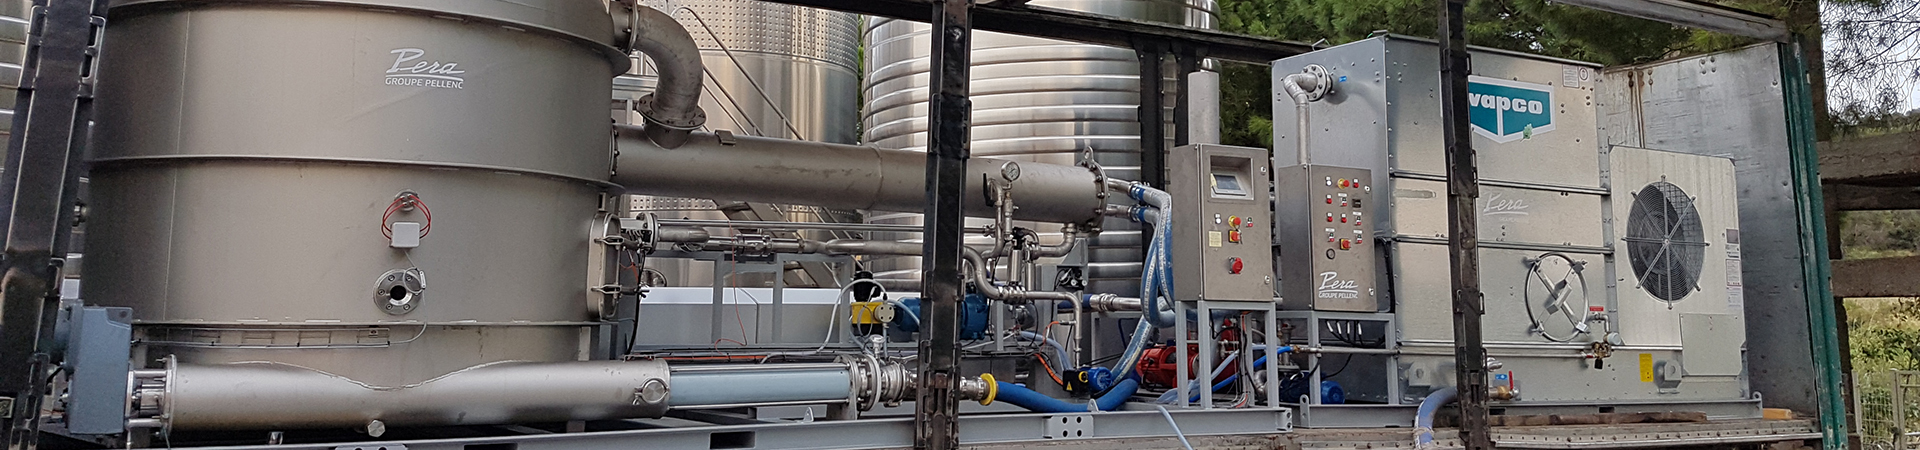 Pera Pellenc, manufacturer of winemaking equipment: Gulfstream